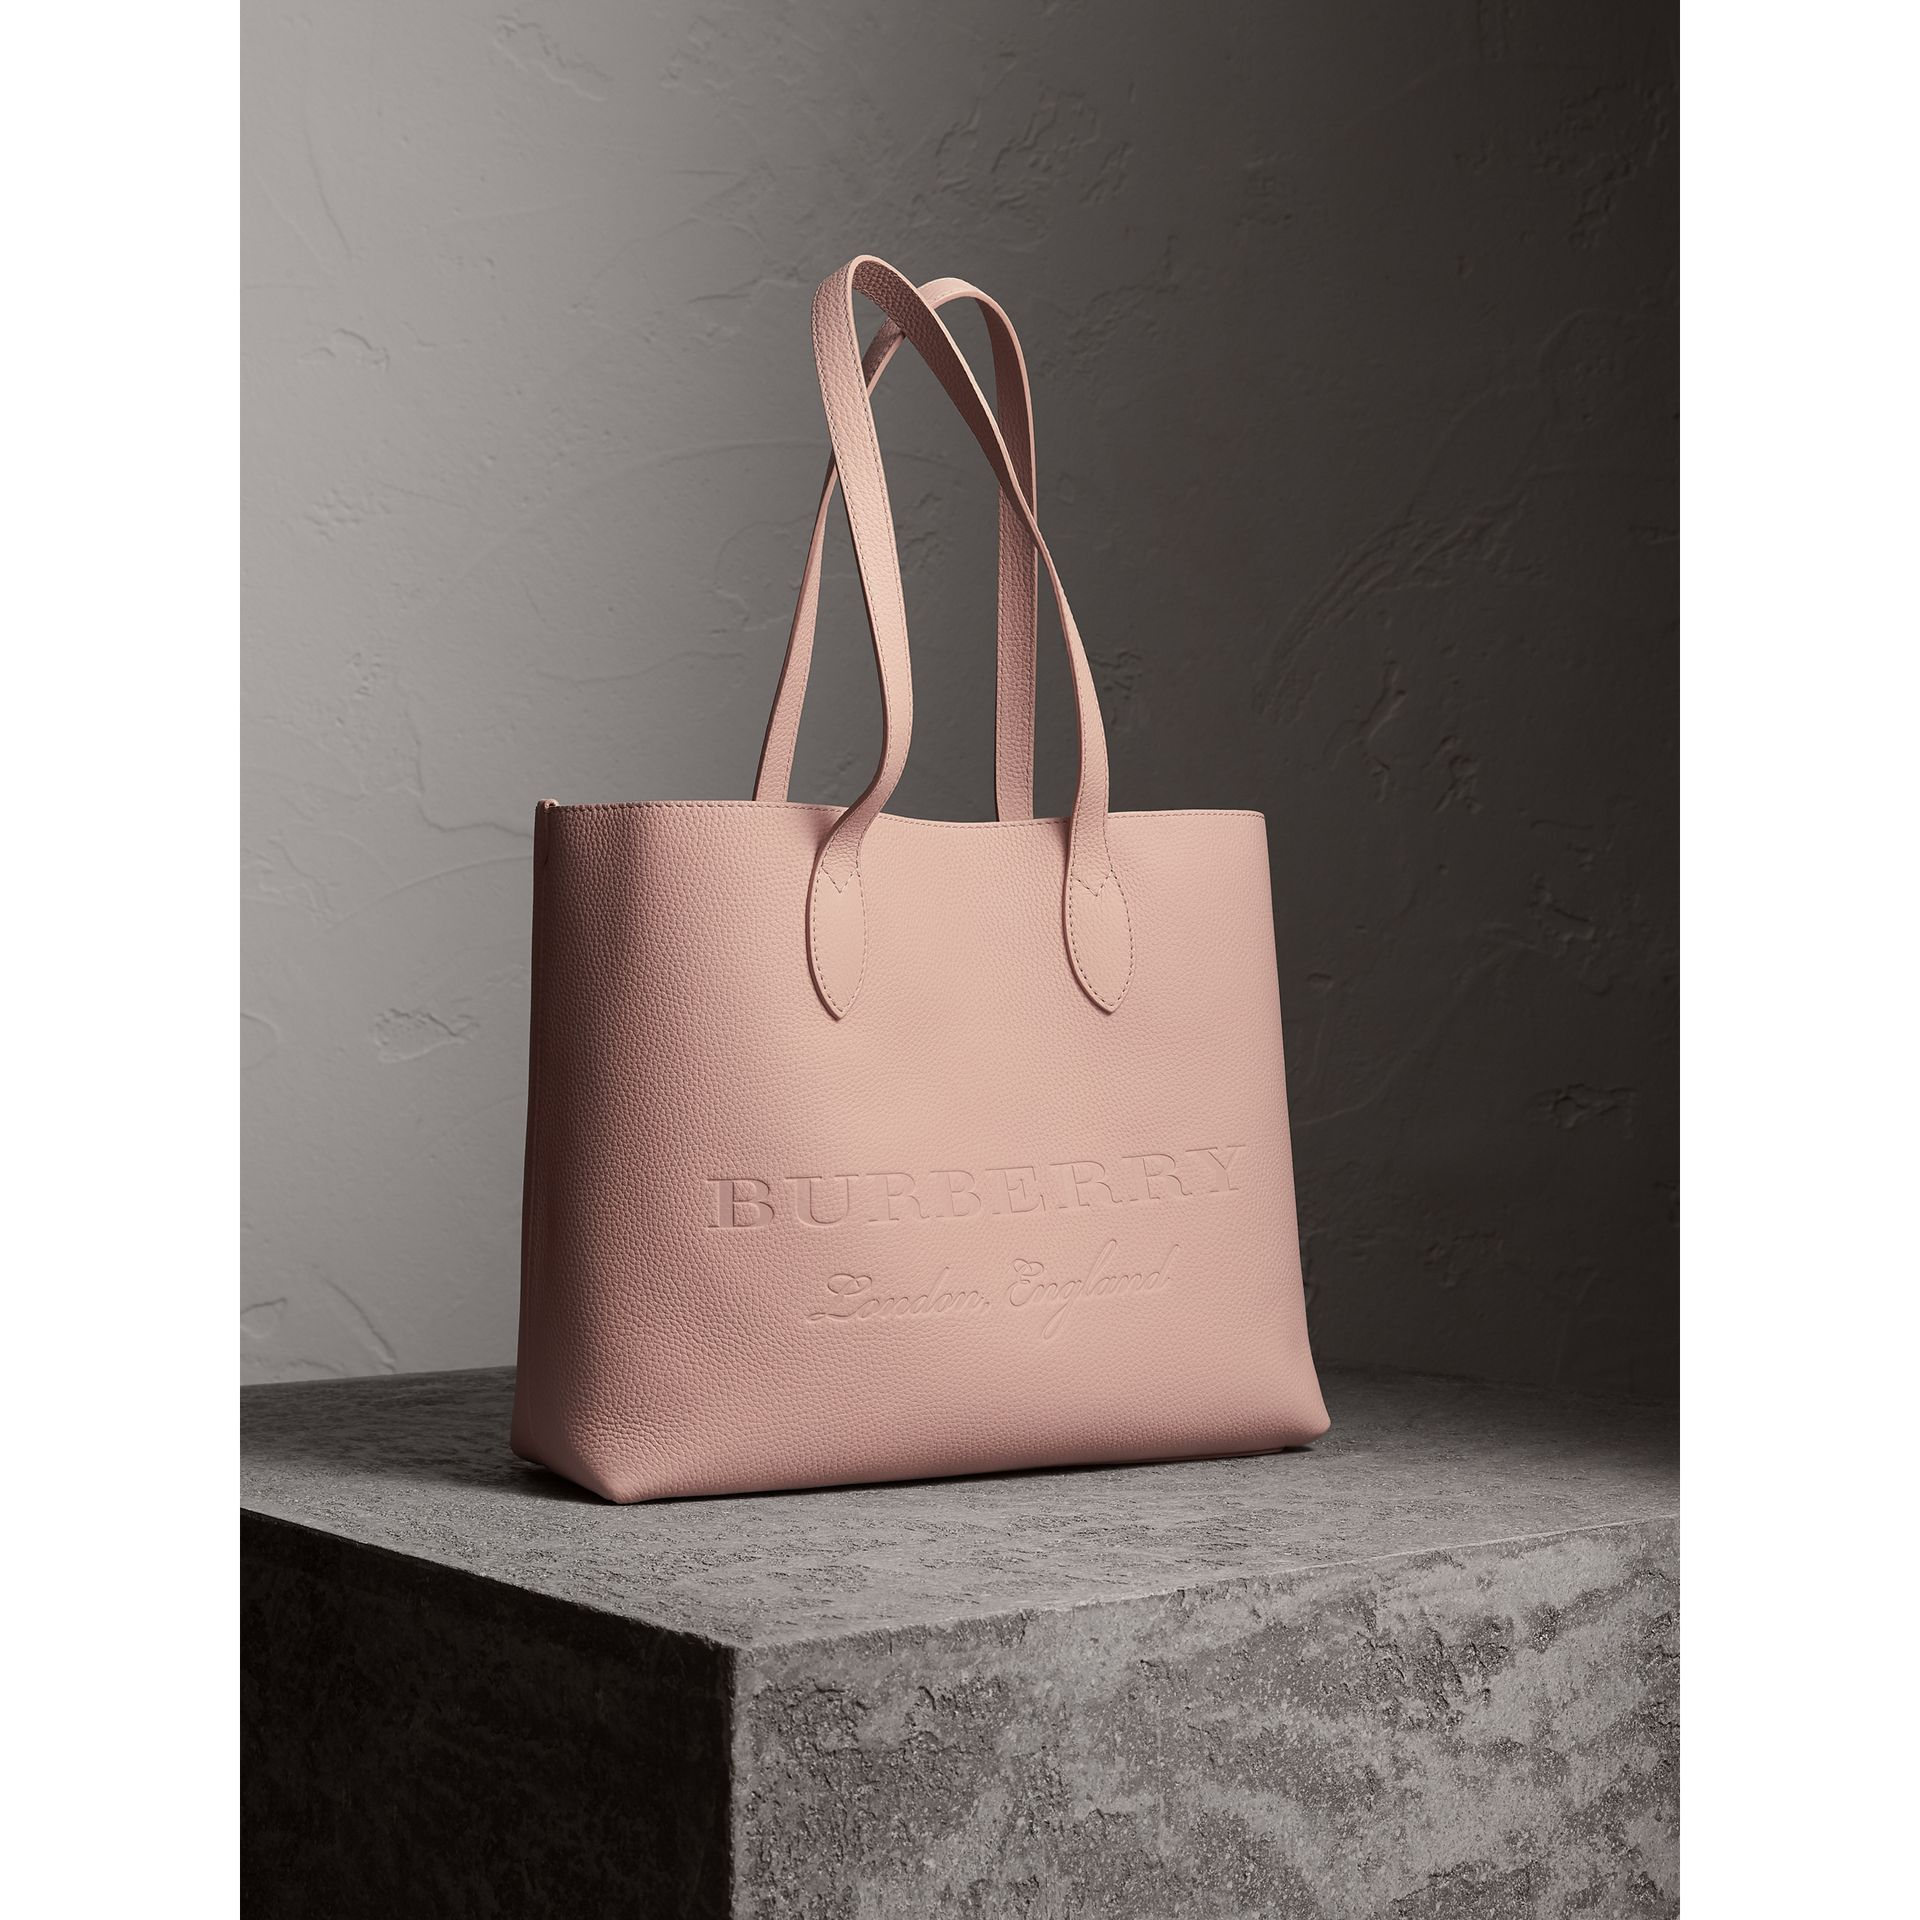 Sac tote en cuir estampé (Rose Platiné Pâle) - Femme | Burberry - photo de la galerie 6